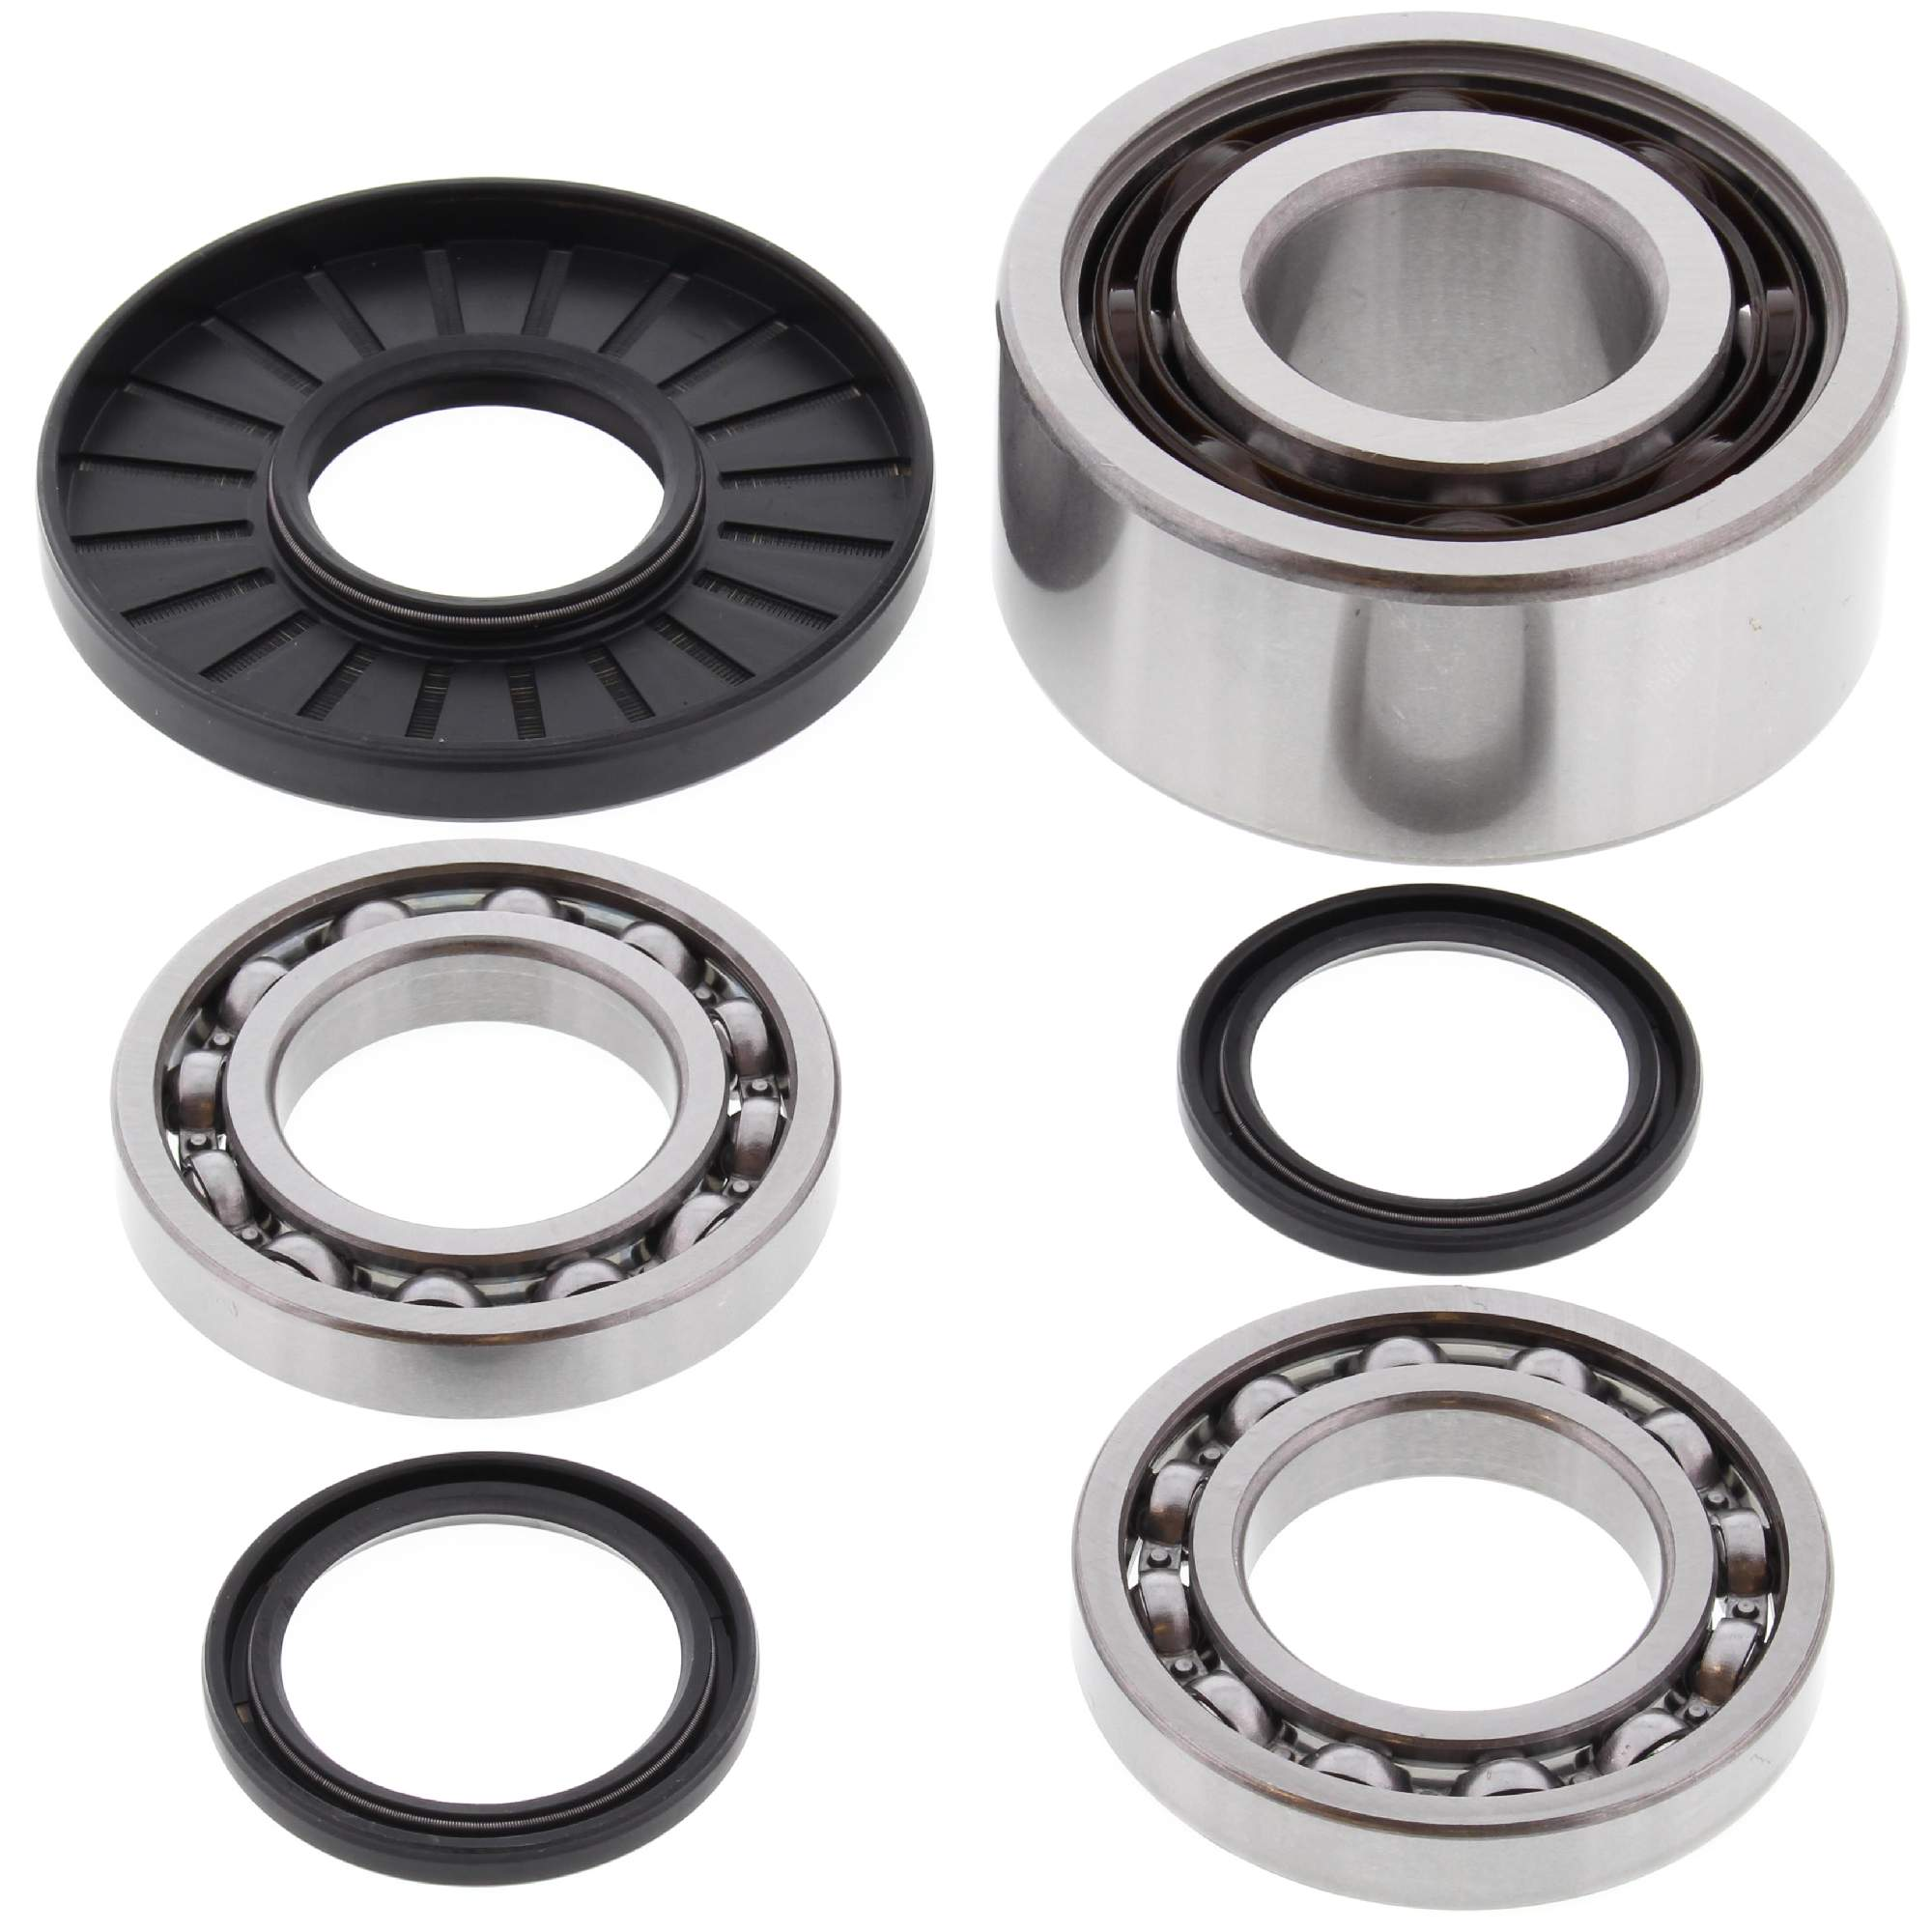 CREW 2014-2015 FRONT DIFFERENTIAL BEARING SEAL KIT POLARIS RANGER 570 MID SIZE